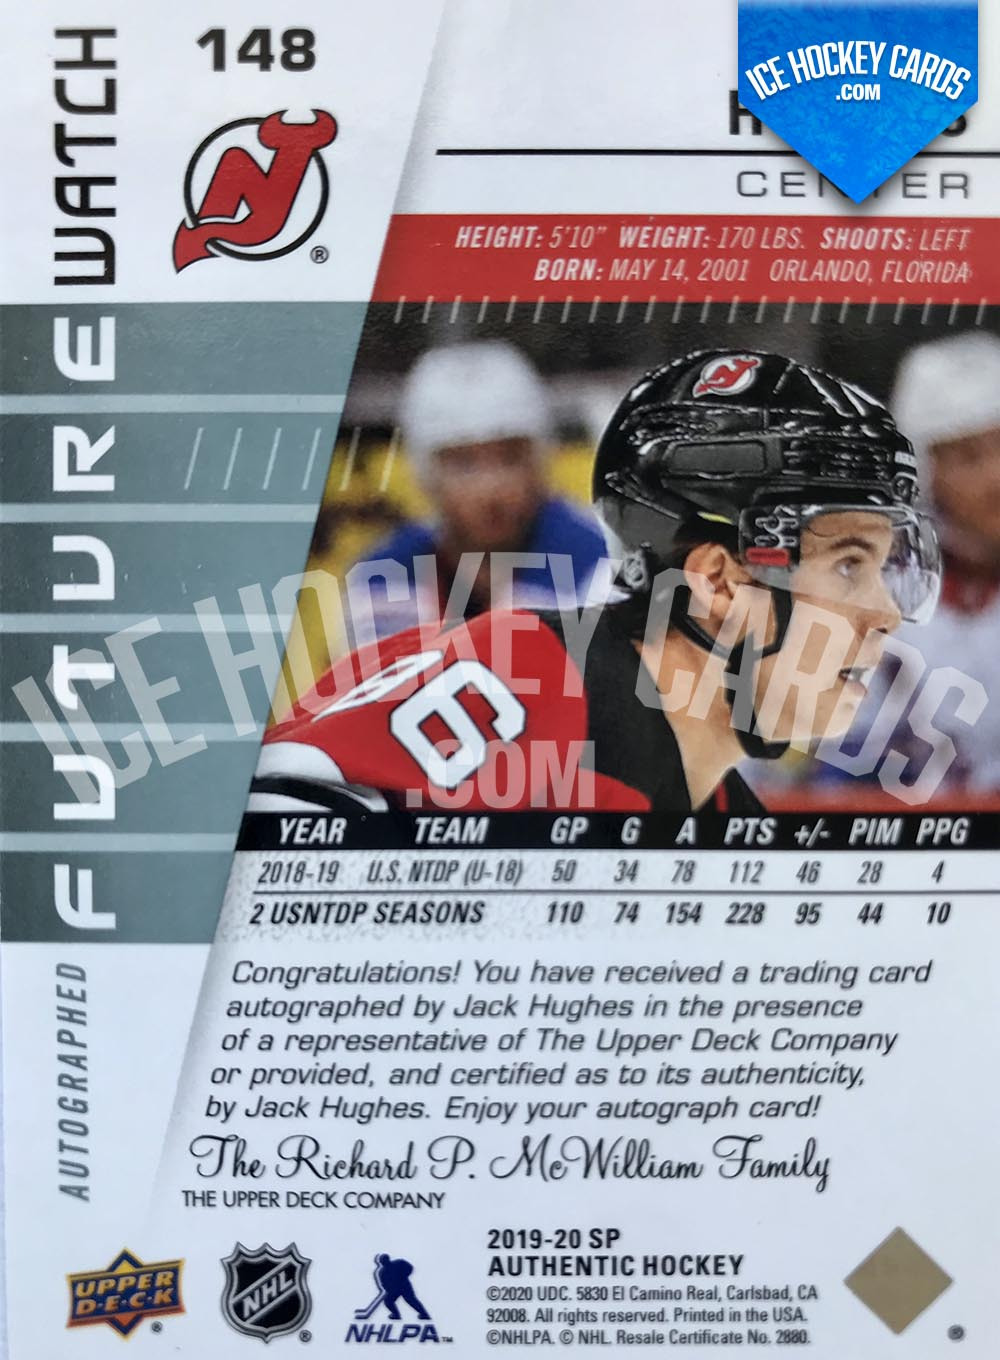 Upper Deck - SP Authentic 2019-20 - Jack Hughes Autographed Future Watch Rookie Card back